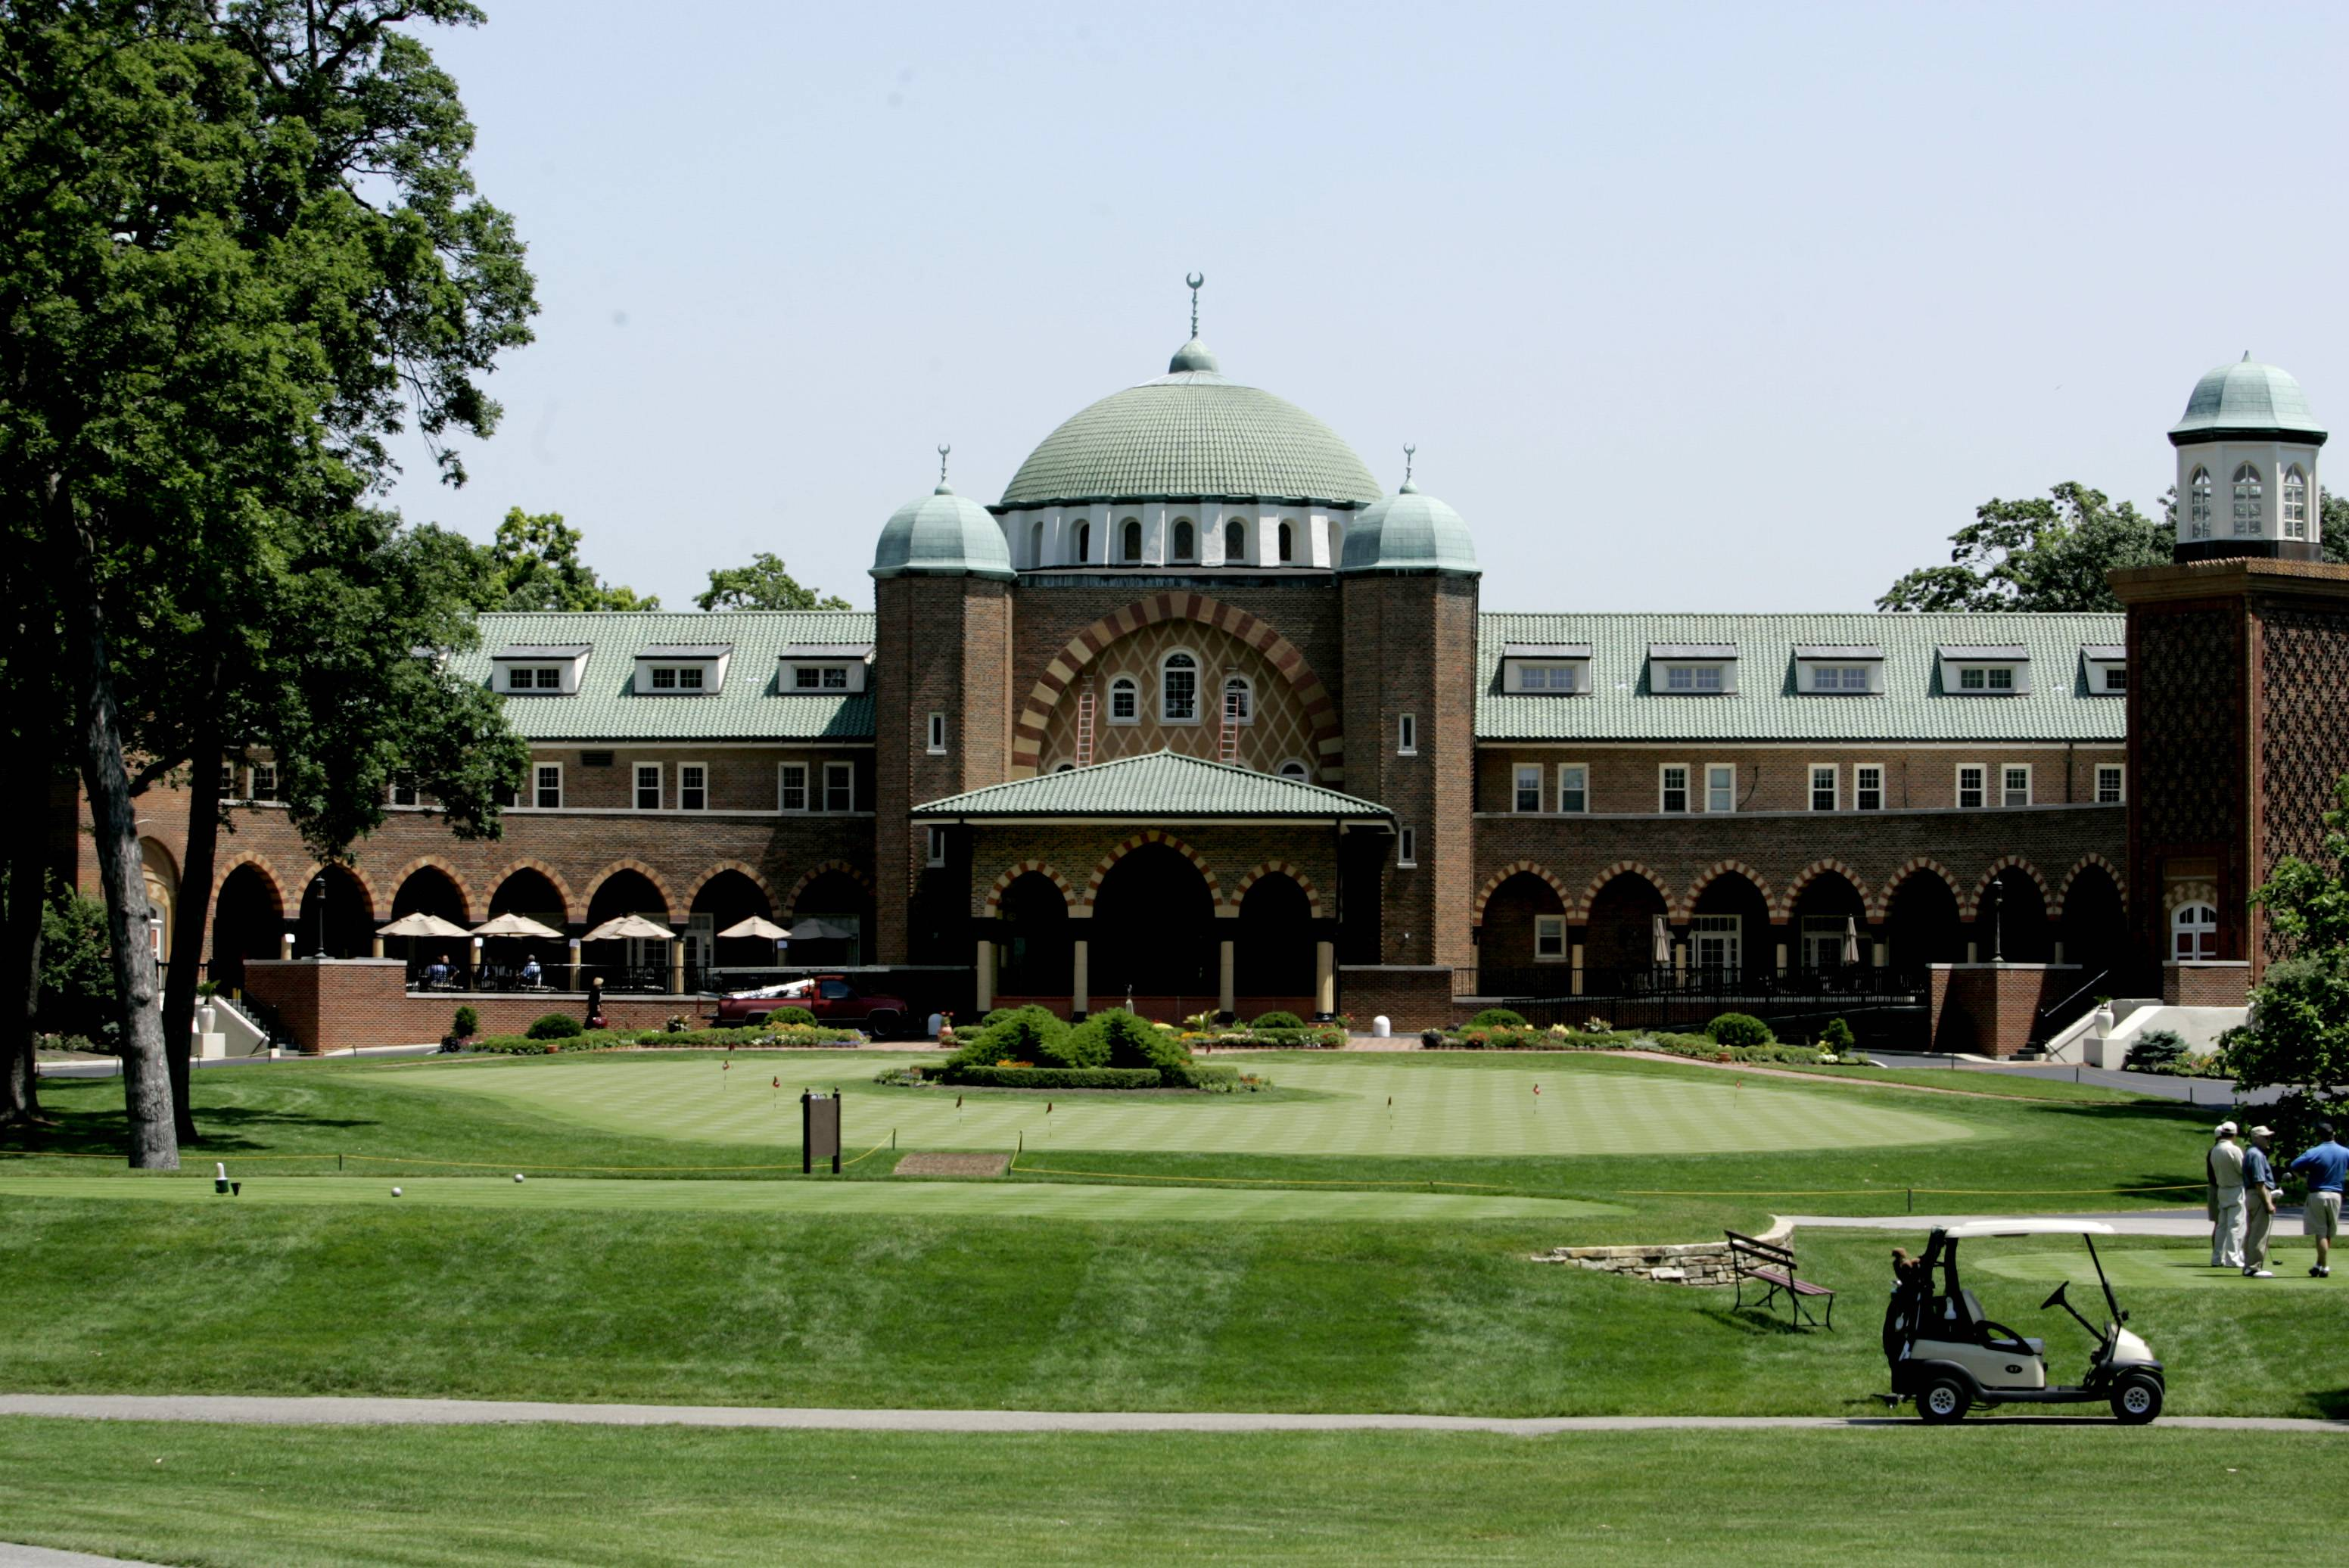 Medinah Country Club officials are appealing property assessments for the past three years, which could net rebates of roughly $1 million if successful and shift more of the tax burden onto neighbors in the future.